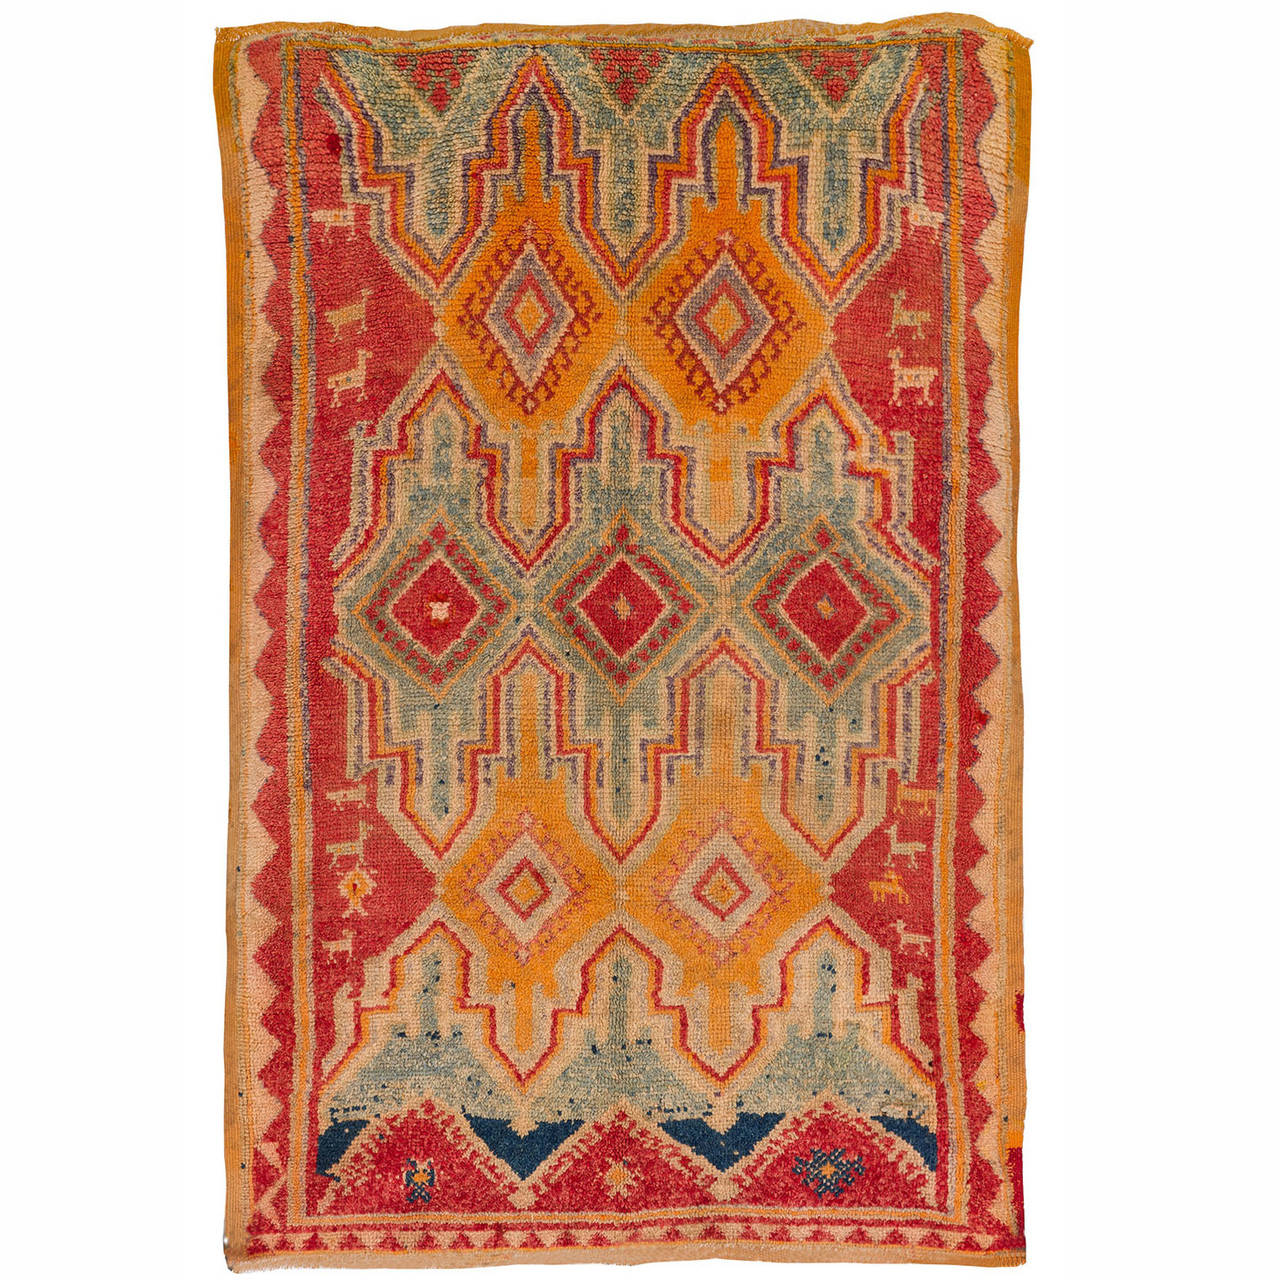 Vintage Ait Bougemmaz Or Azilal Rug Morocco N 3804 For